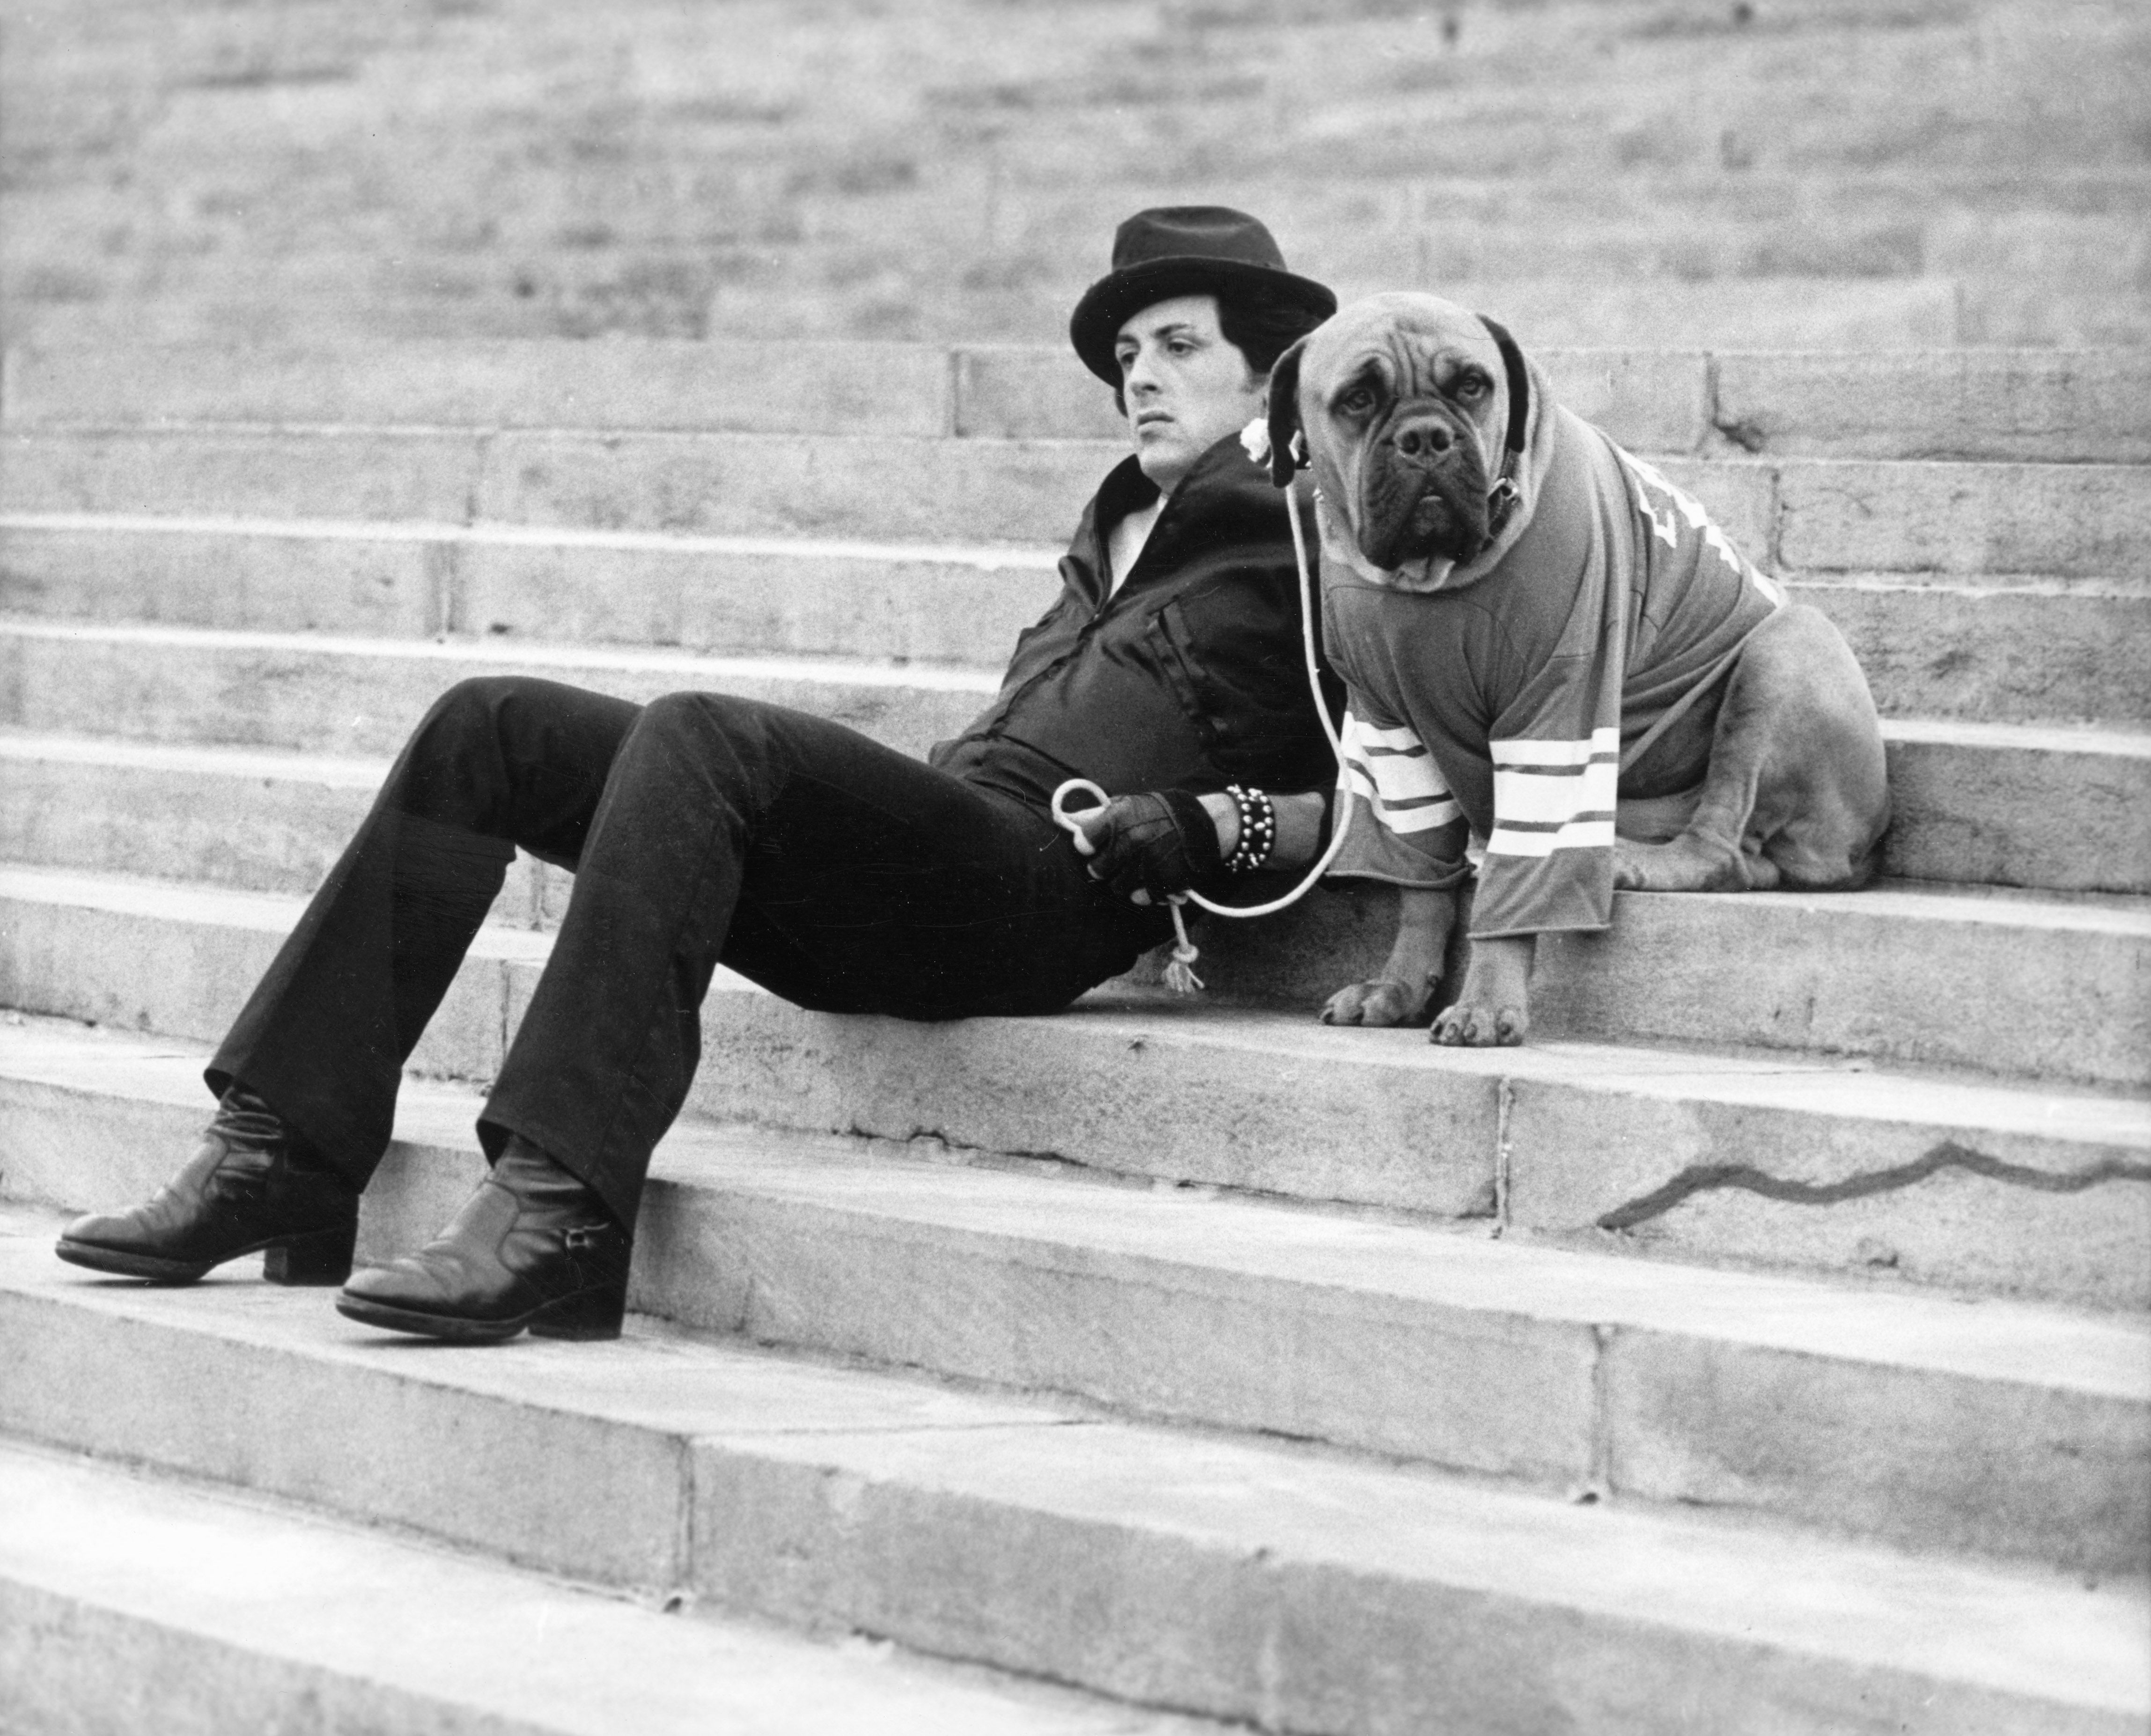 """Sylvester Stallone sits on a staircase while holding the leash of a dog in a still from the film, """"Rocky"""" in 1976. 